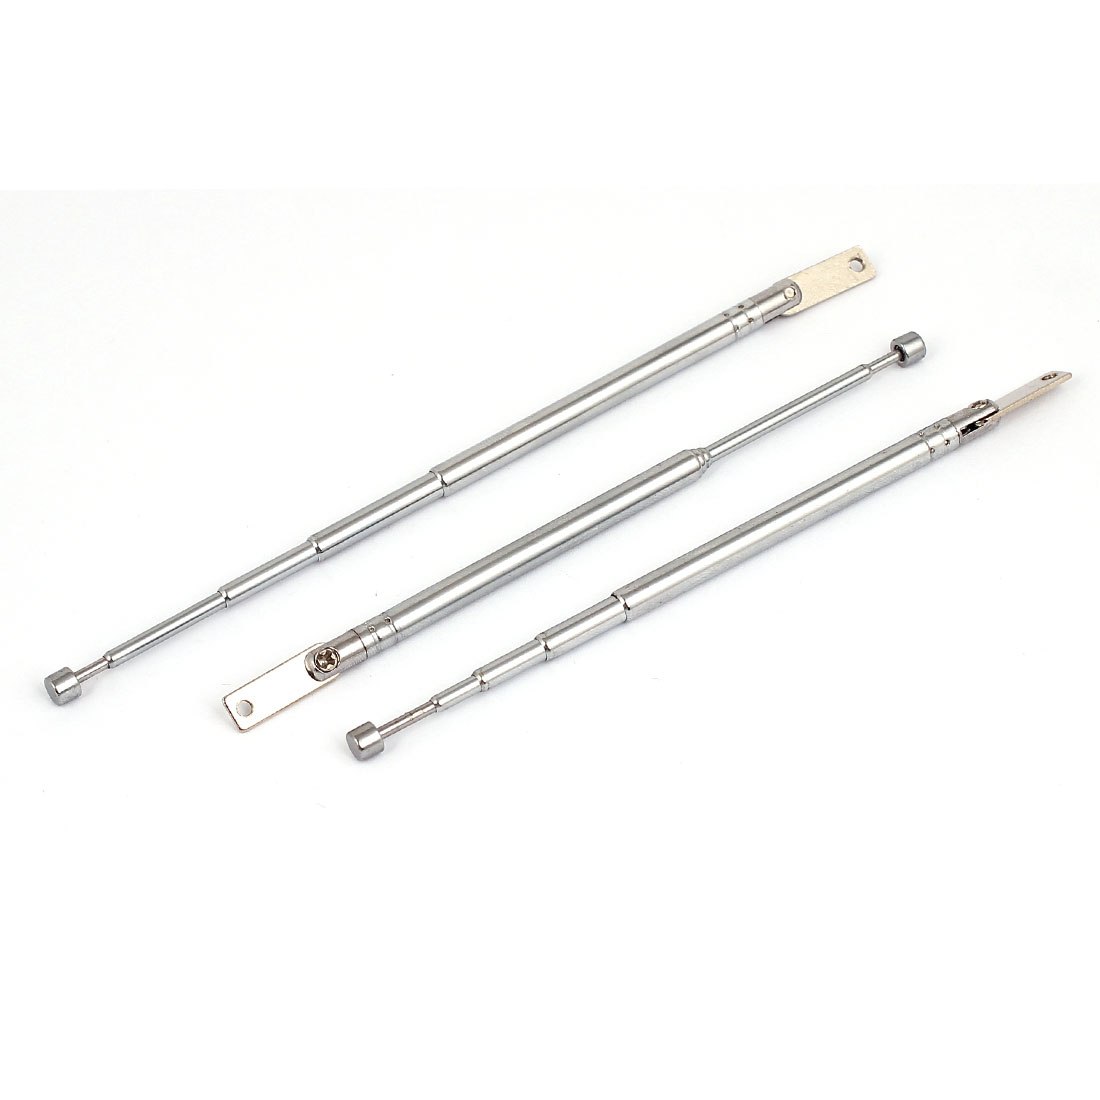 3pcs 27cm Long 5 Sections Telescopic Antenna Aerial Mast for TV RC Controller